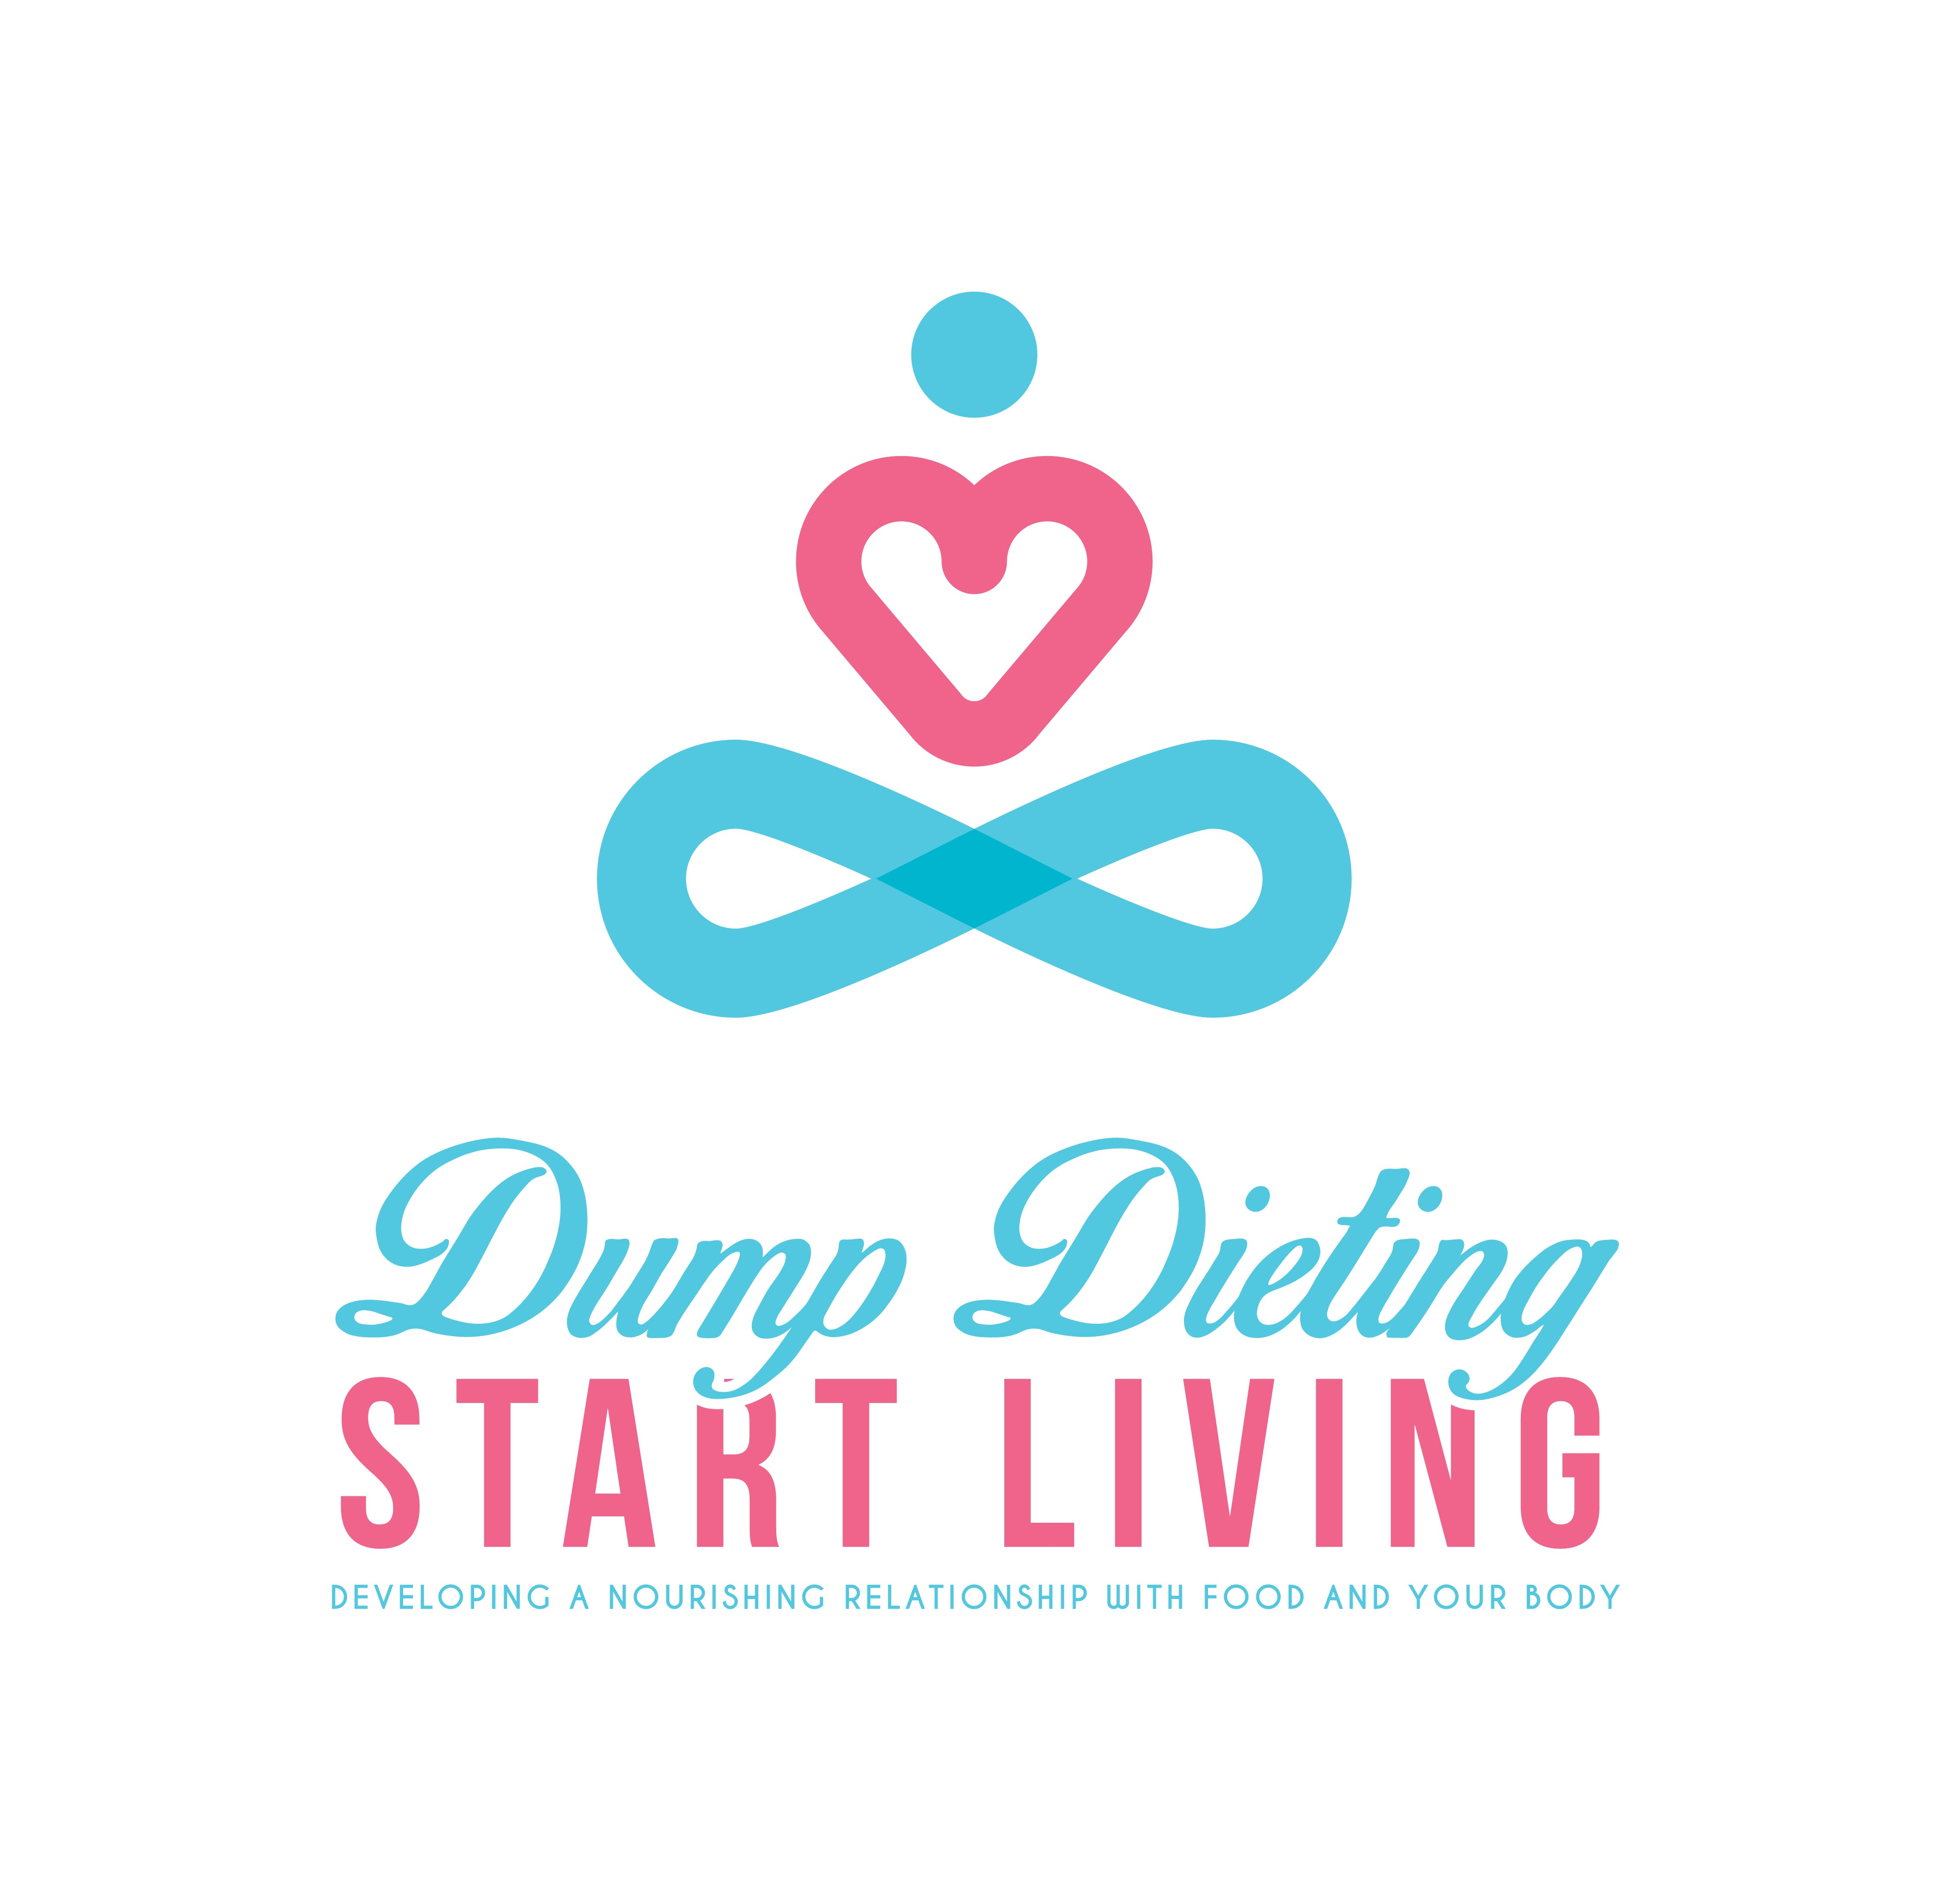 Create an enticing brand to help people stop dieting and be comfortable in their own body